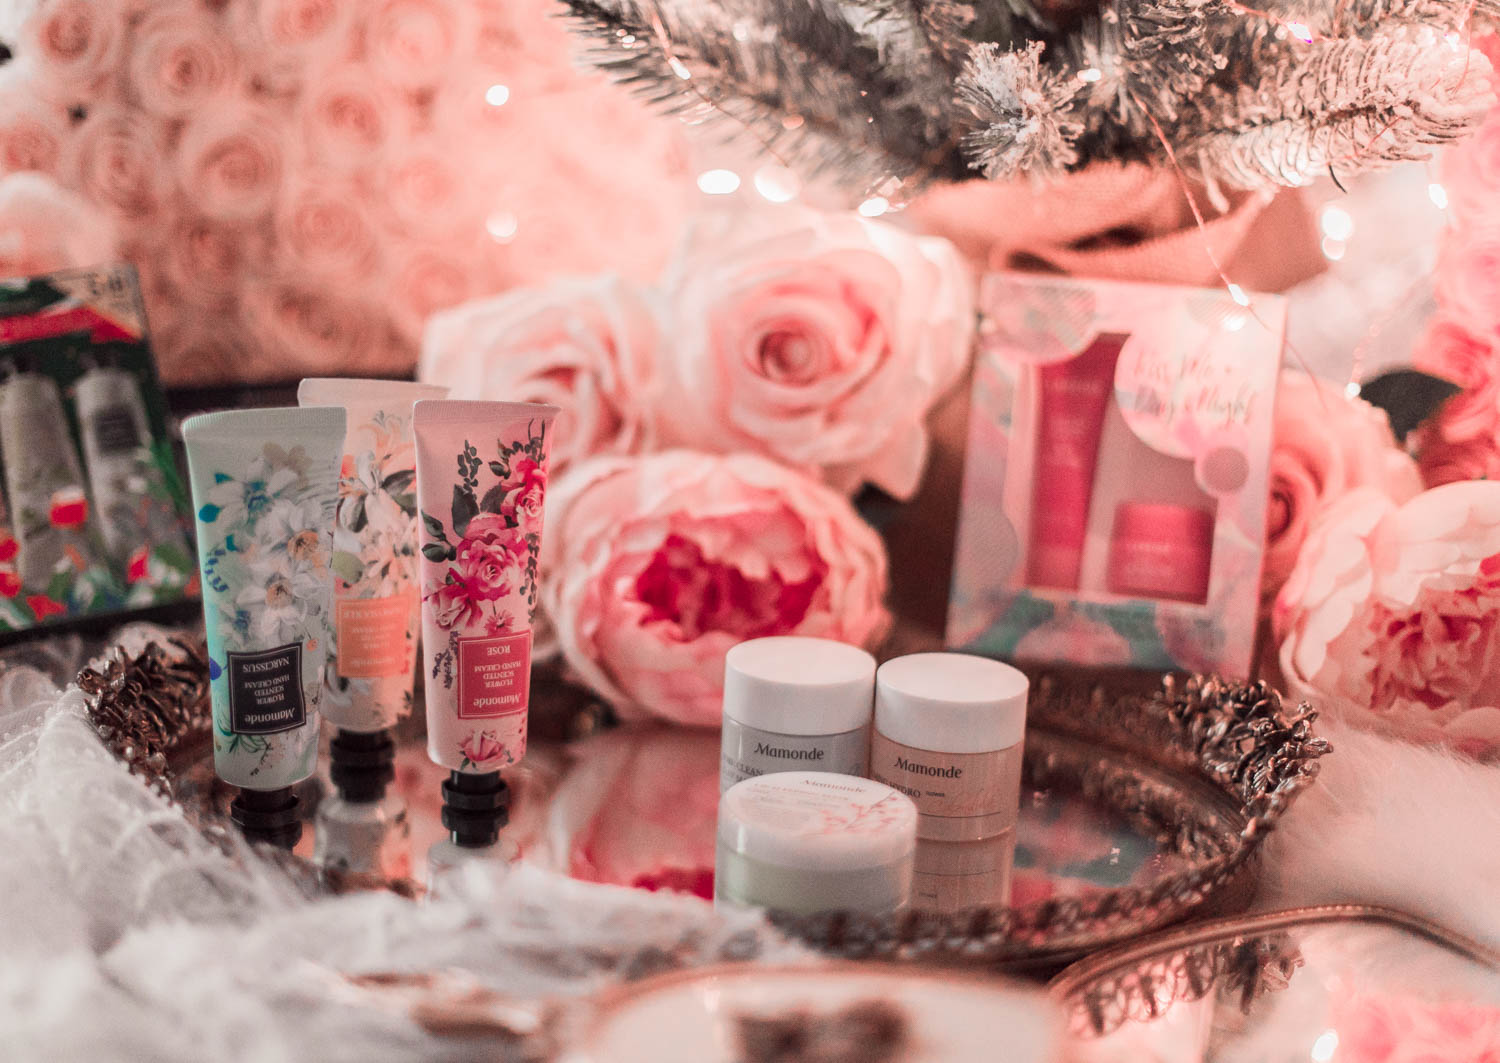 Elizabeth Hugen of Lizzie in Lace shares her beauty holiday gift guide including Mamonde and Laneige holiday gift sets